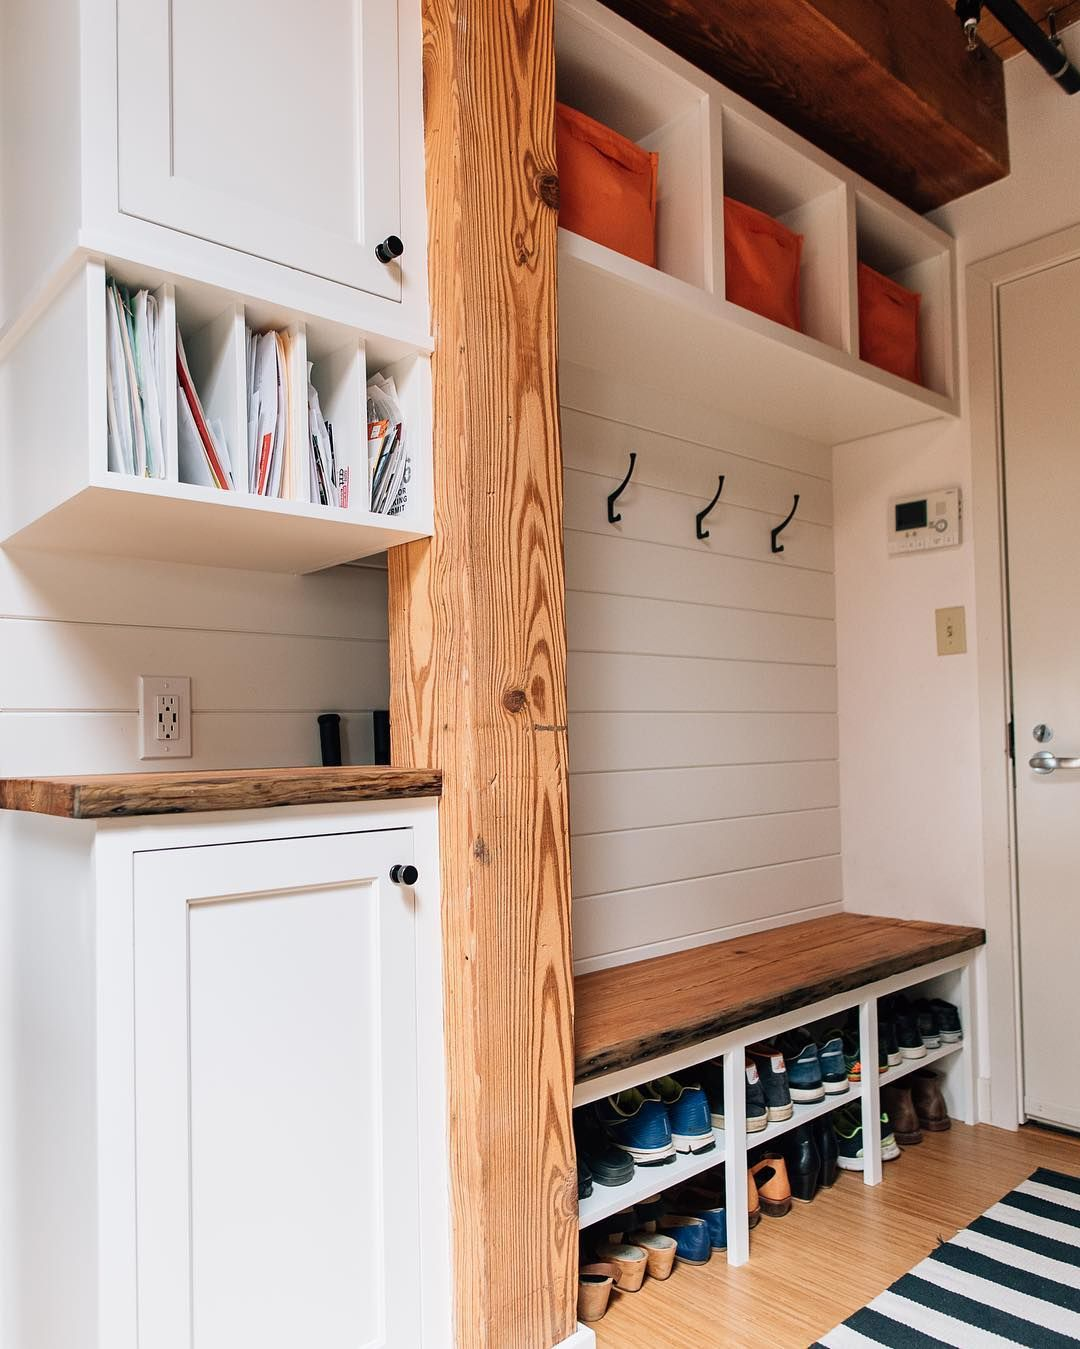 pin by misty prichard on storage solutions | pinterest | mudroom